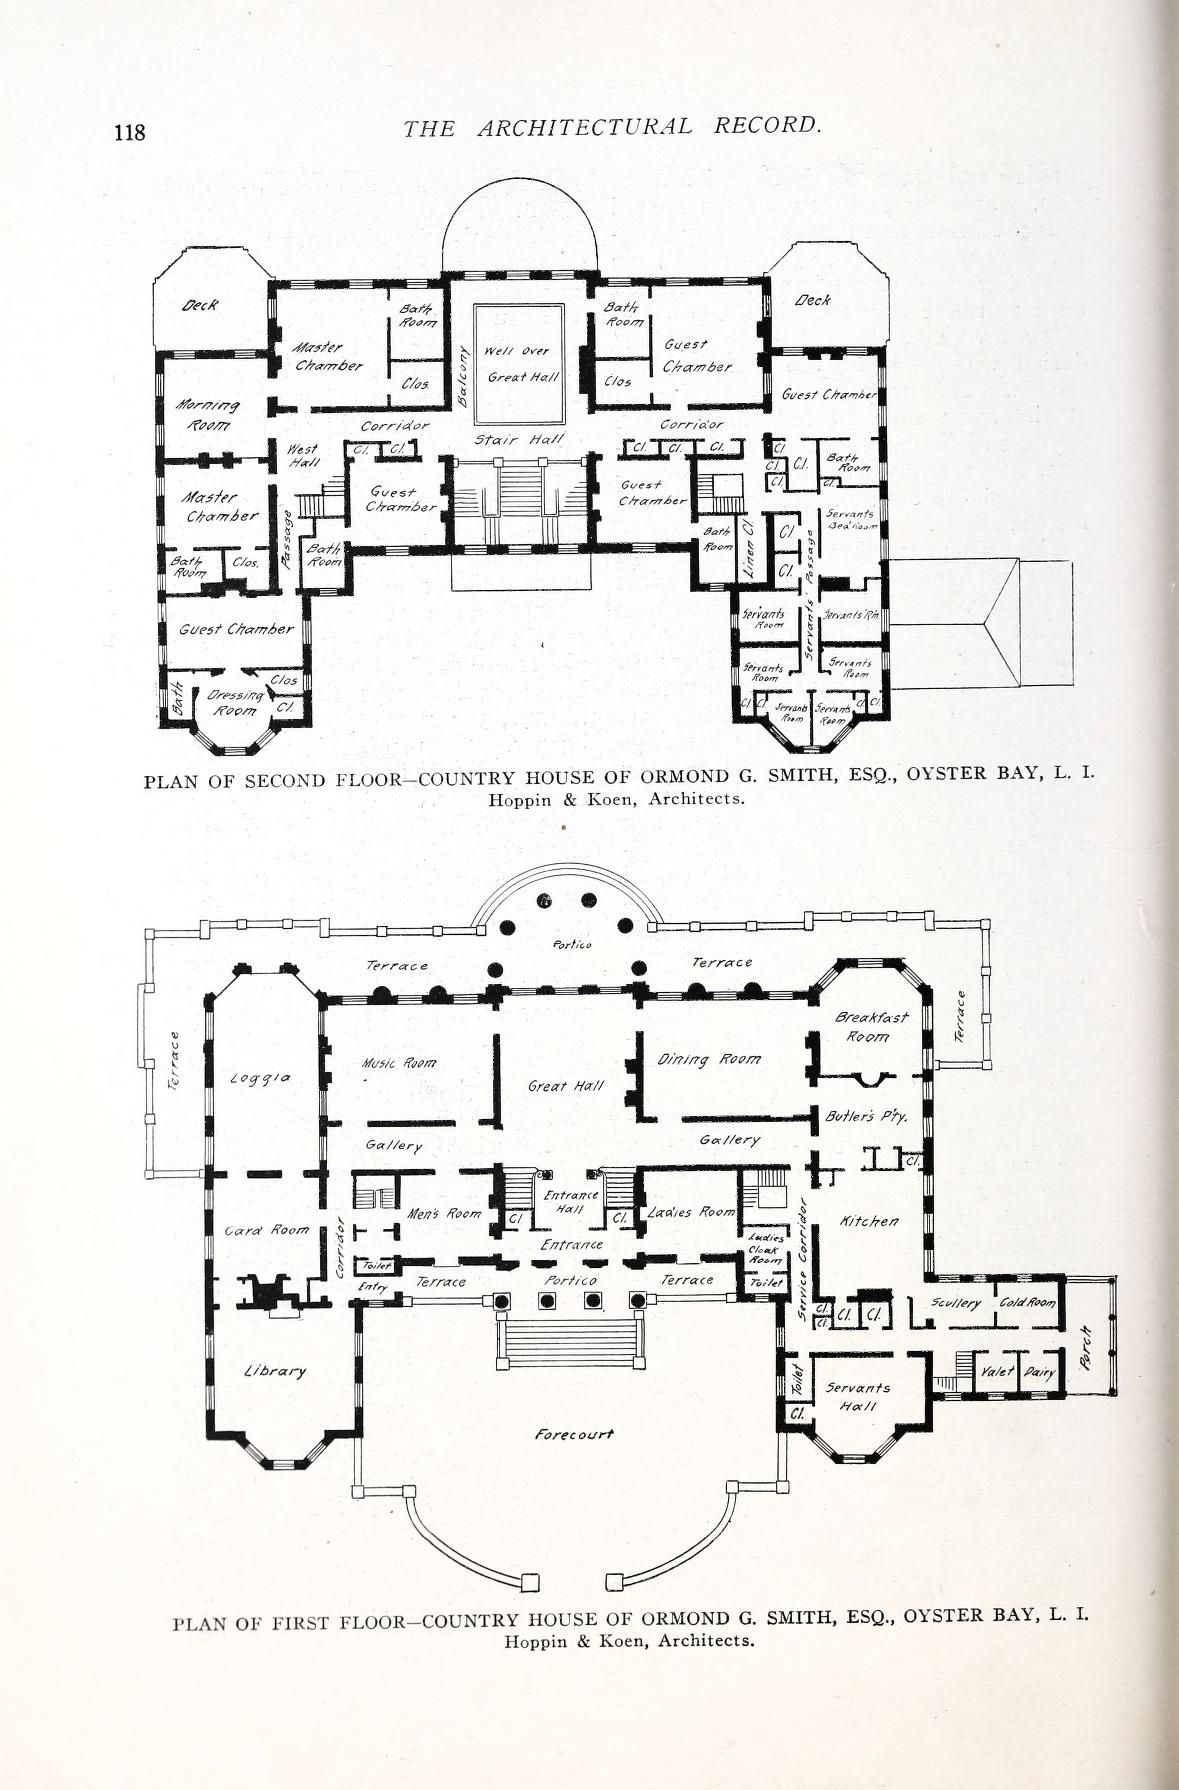 Architectural Record Free Download Borrow And Streaming Internet Archive In 2021 Architectural Floor Plans Hotel Floor Plan Vintage House Plans